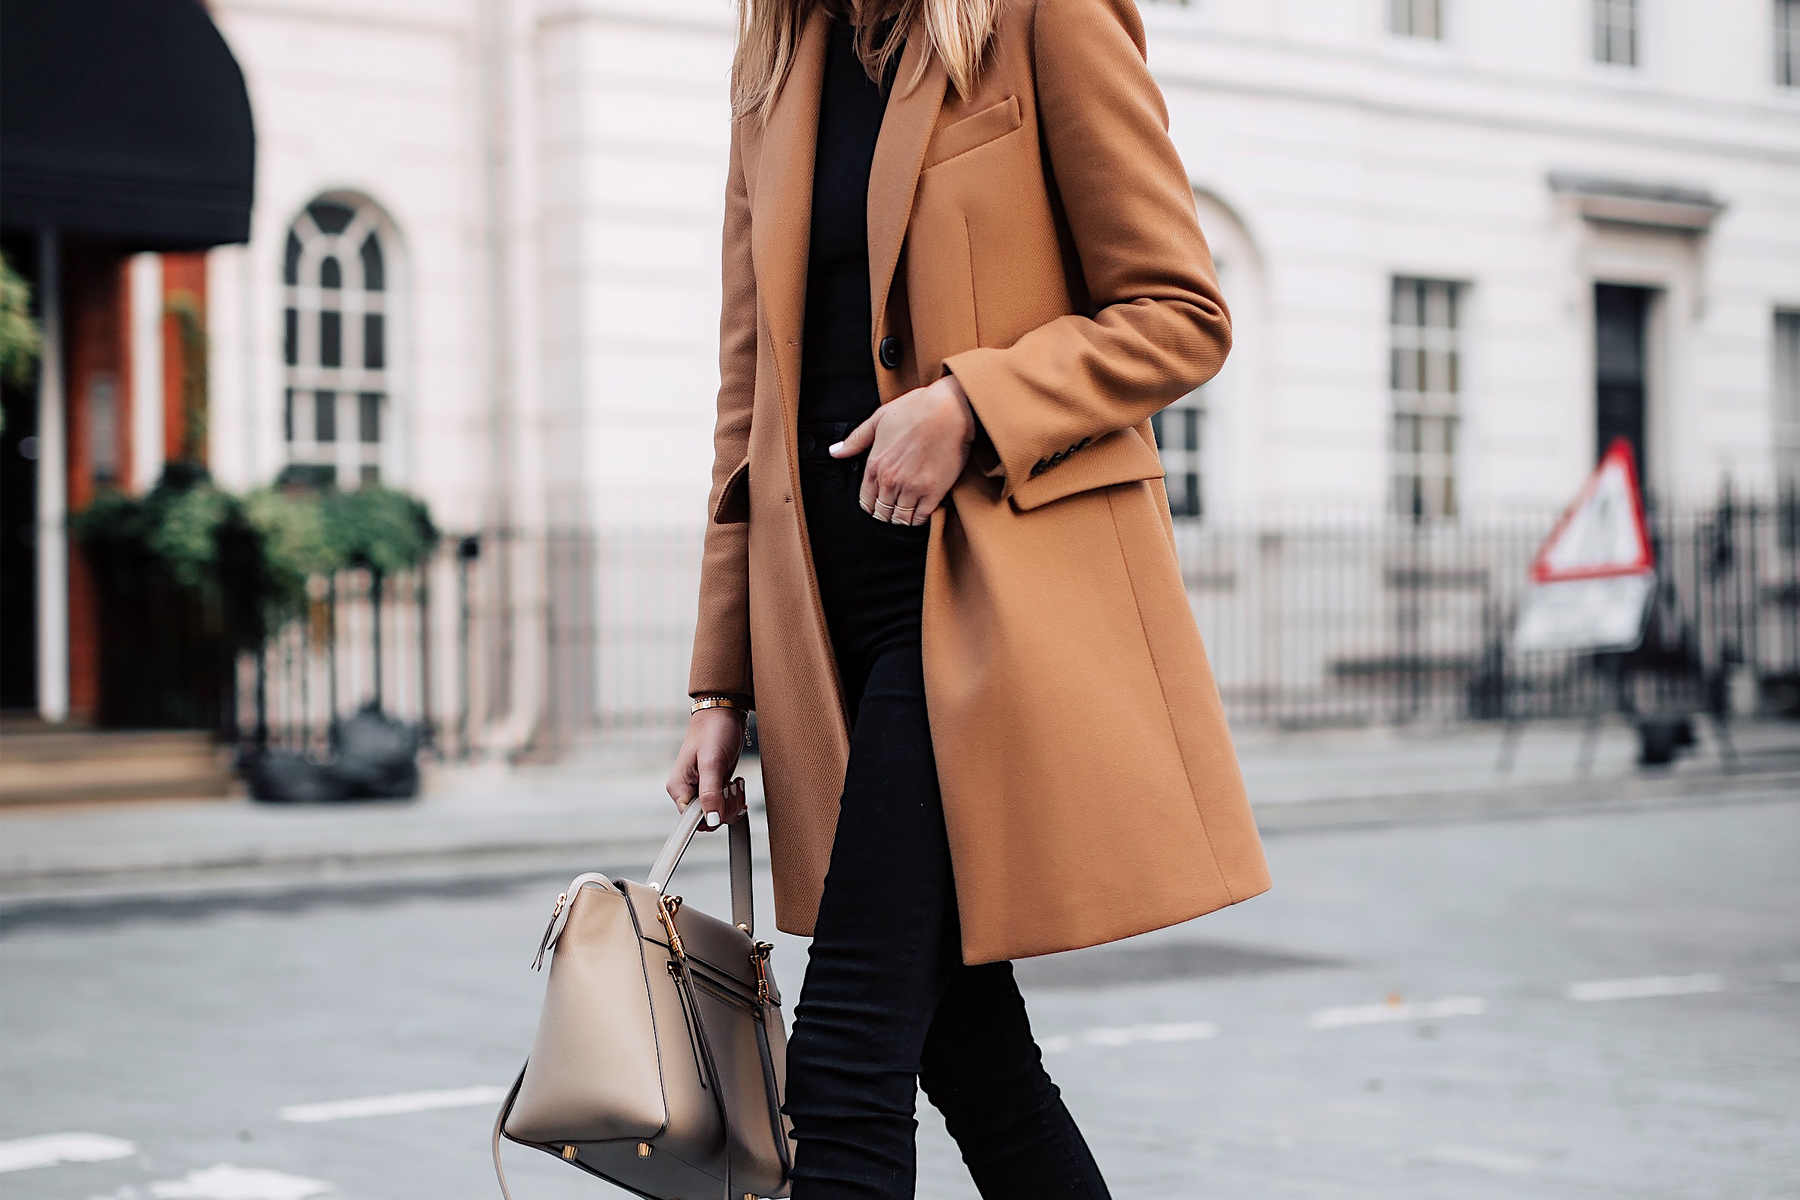 Woman WearingZara Camel Coat Black Sweater Black Skinny Jeans Outfit Celine Belt Bag Fashion Jackson San Diego Fashion Blogger London Street Style